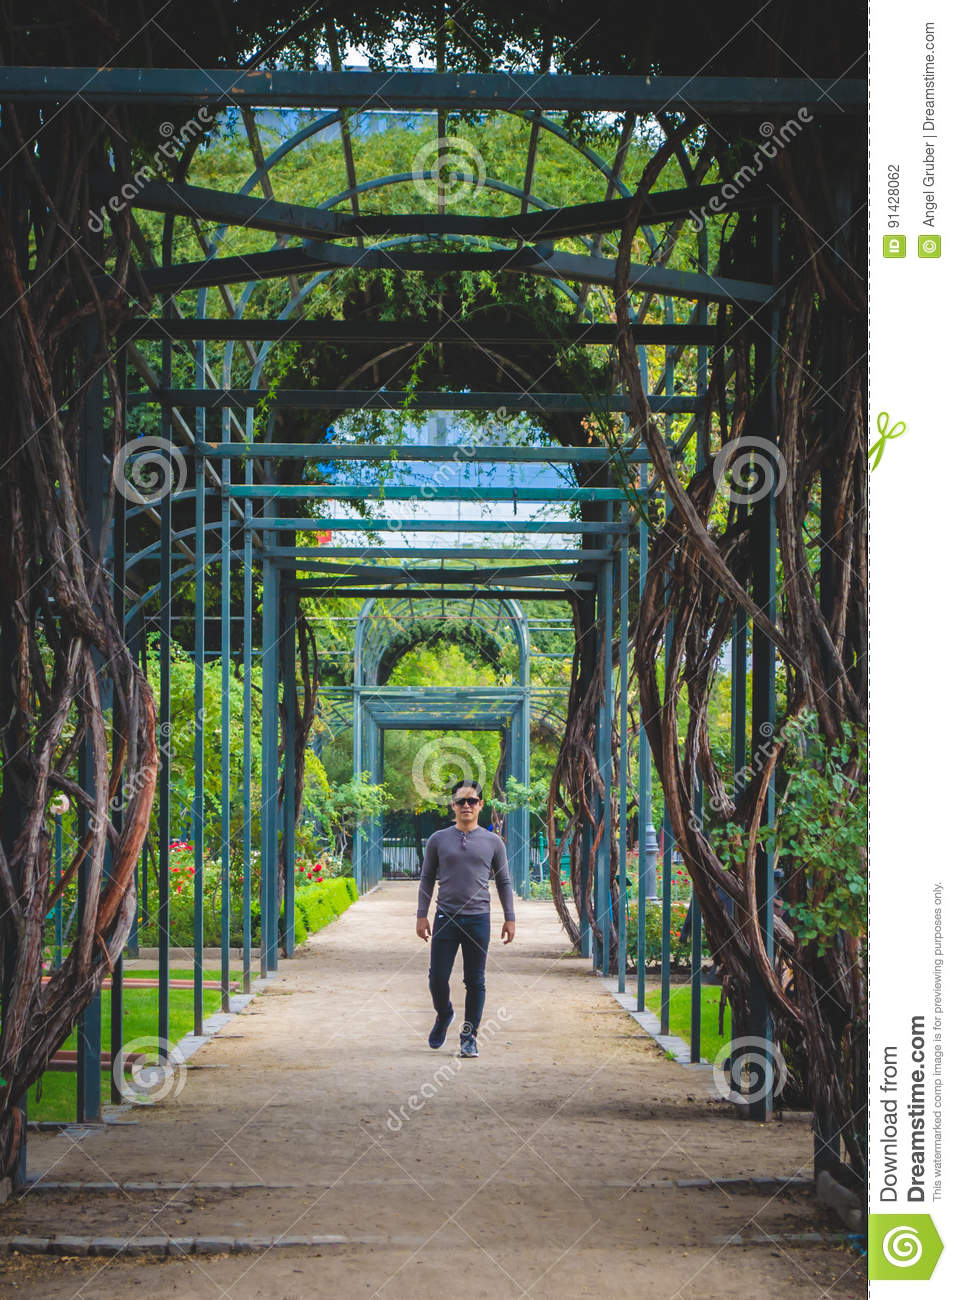 Man portrait with a Maze path in the park